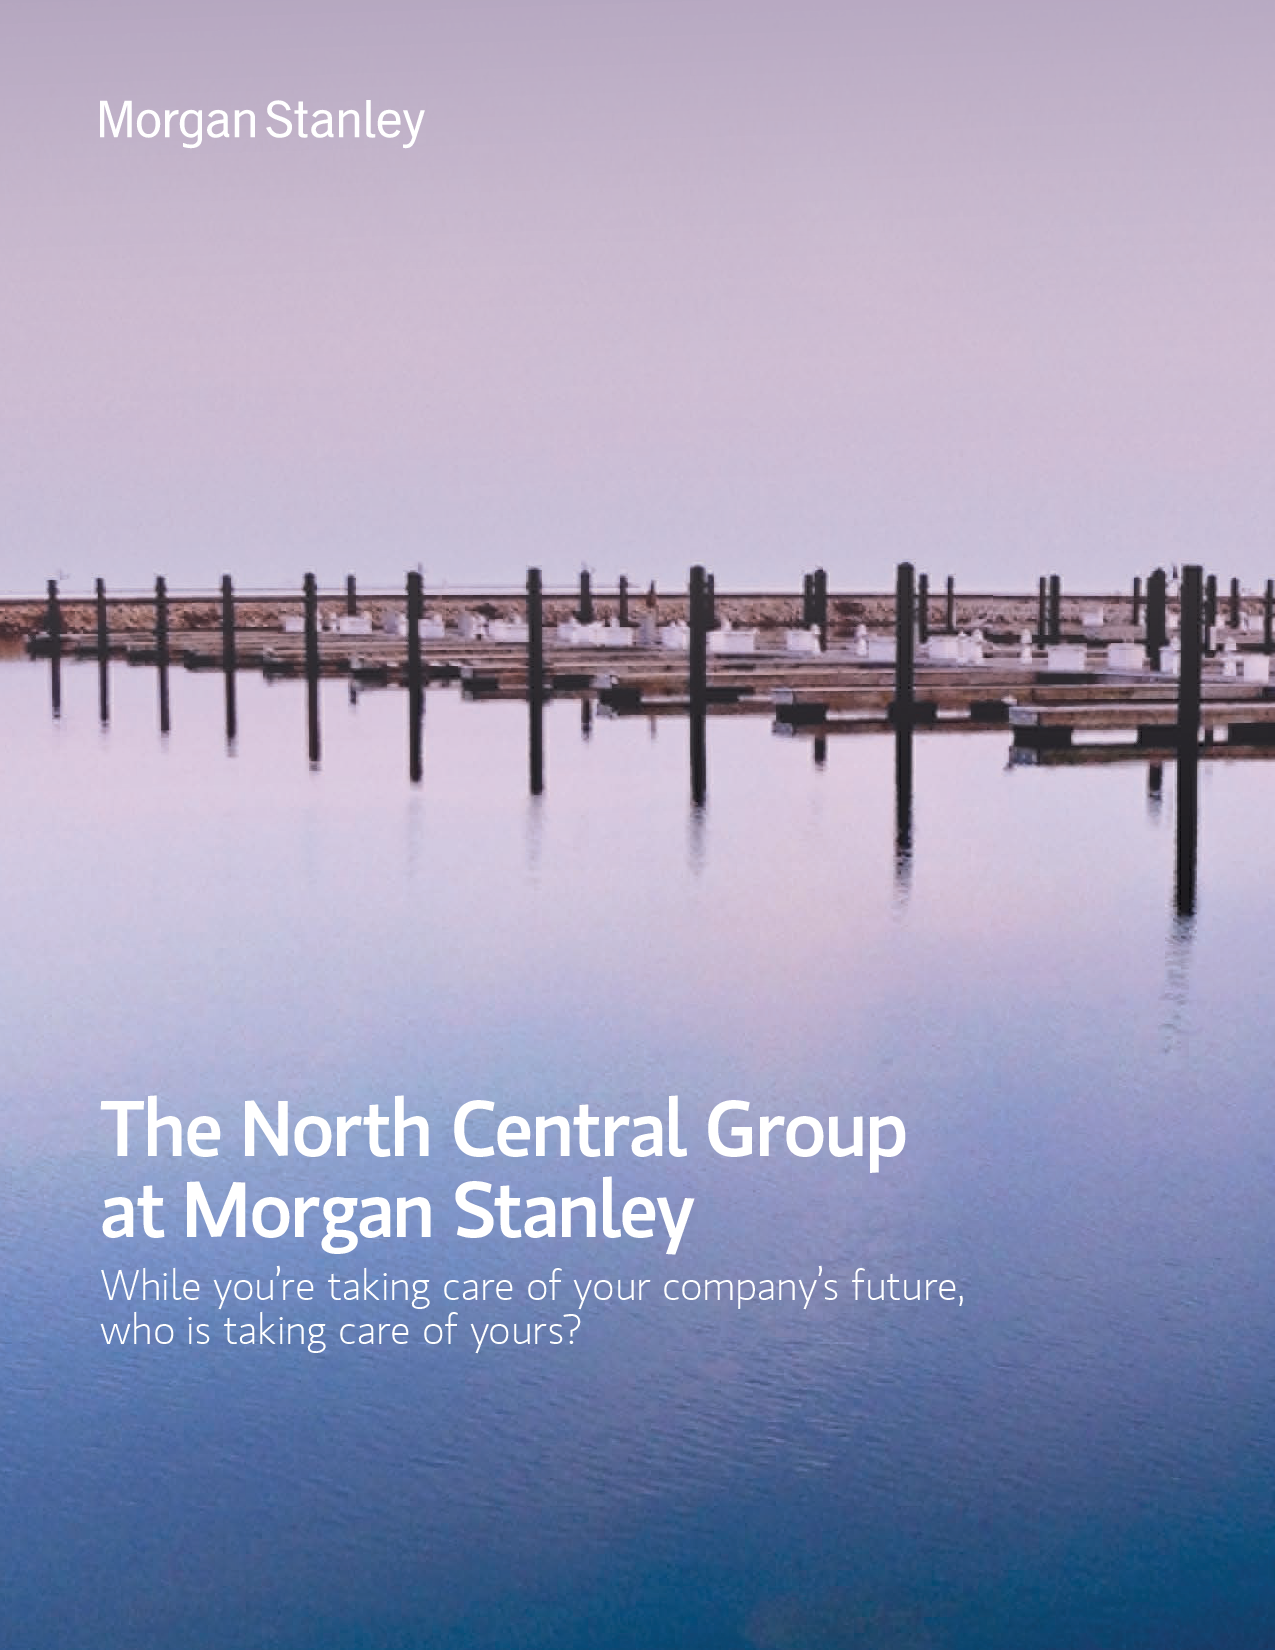 Patrick D Walsh | Chicago, IL | Morgan Stanley Wealth Management